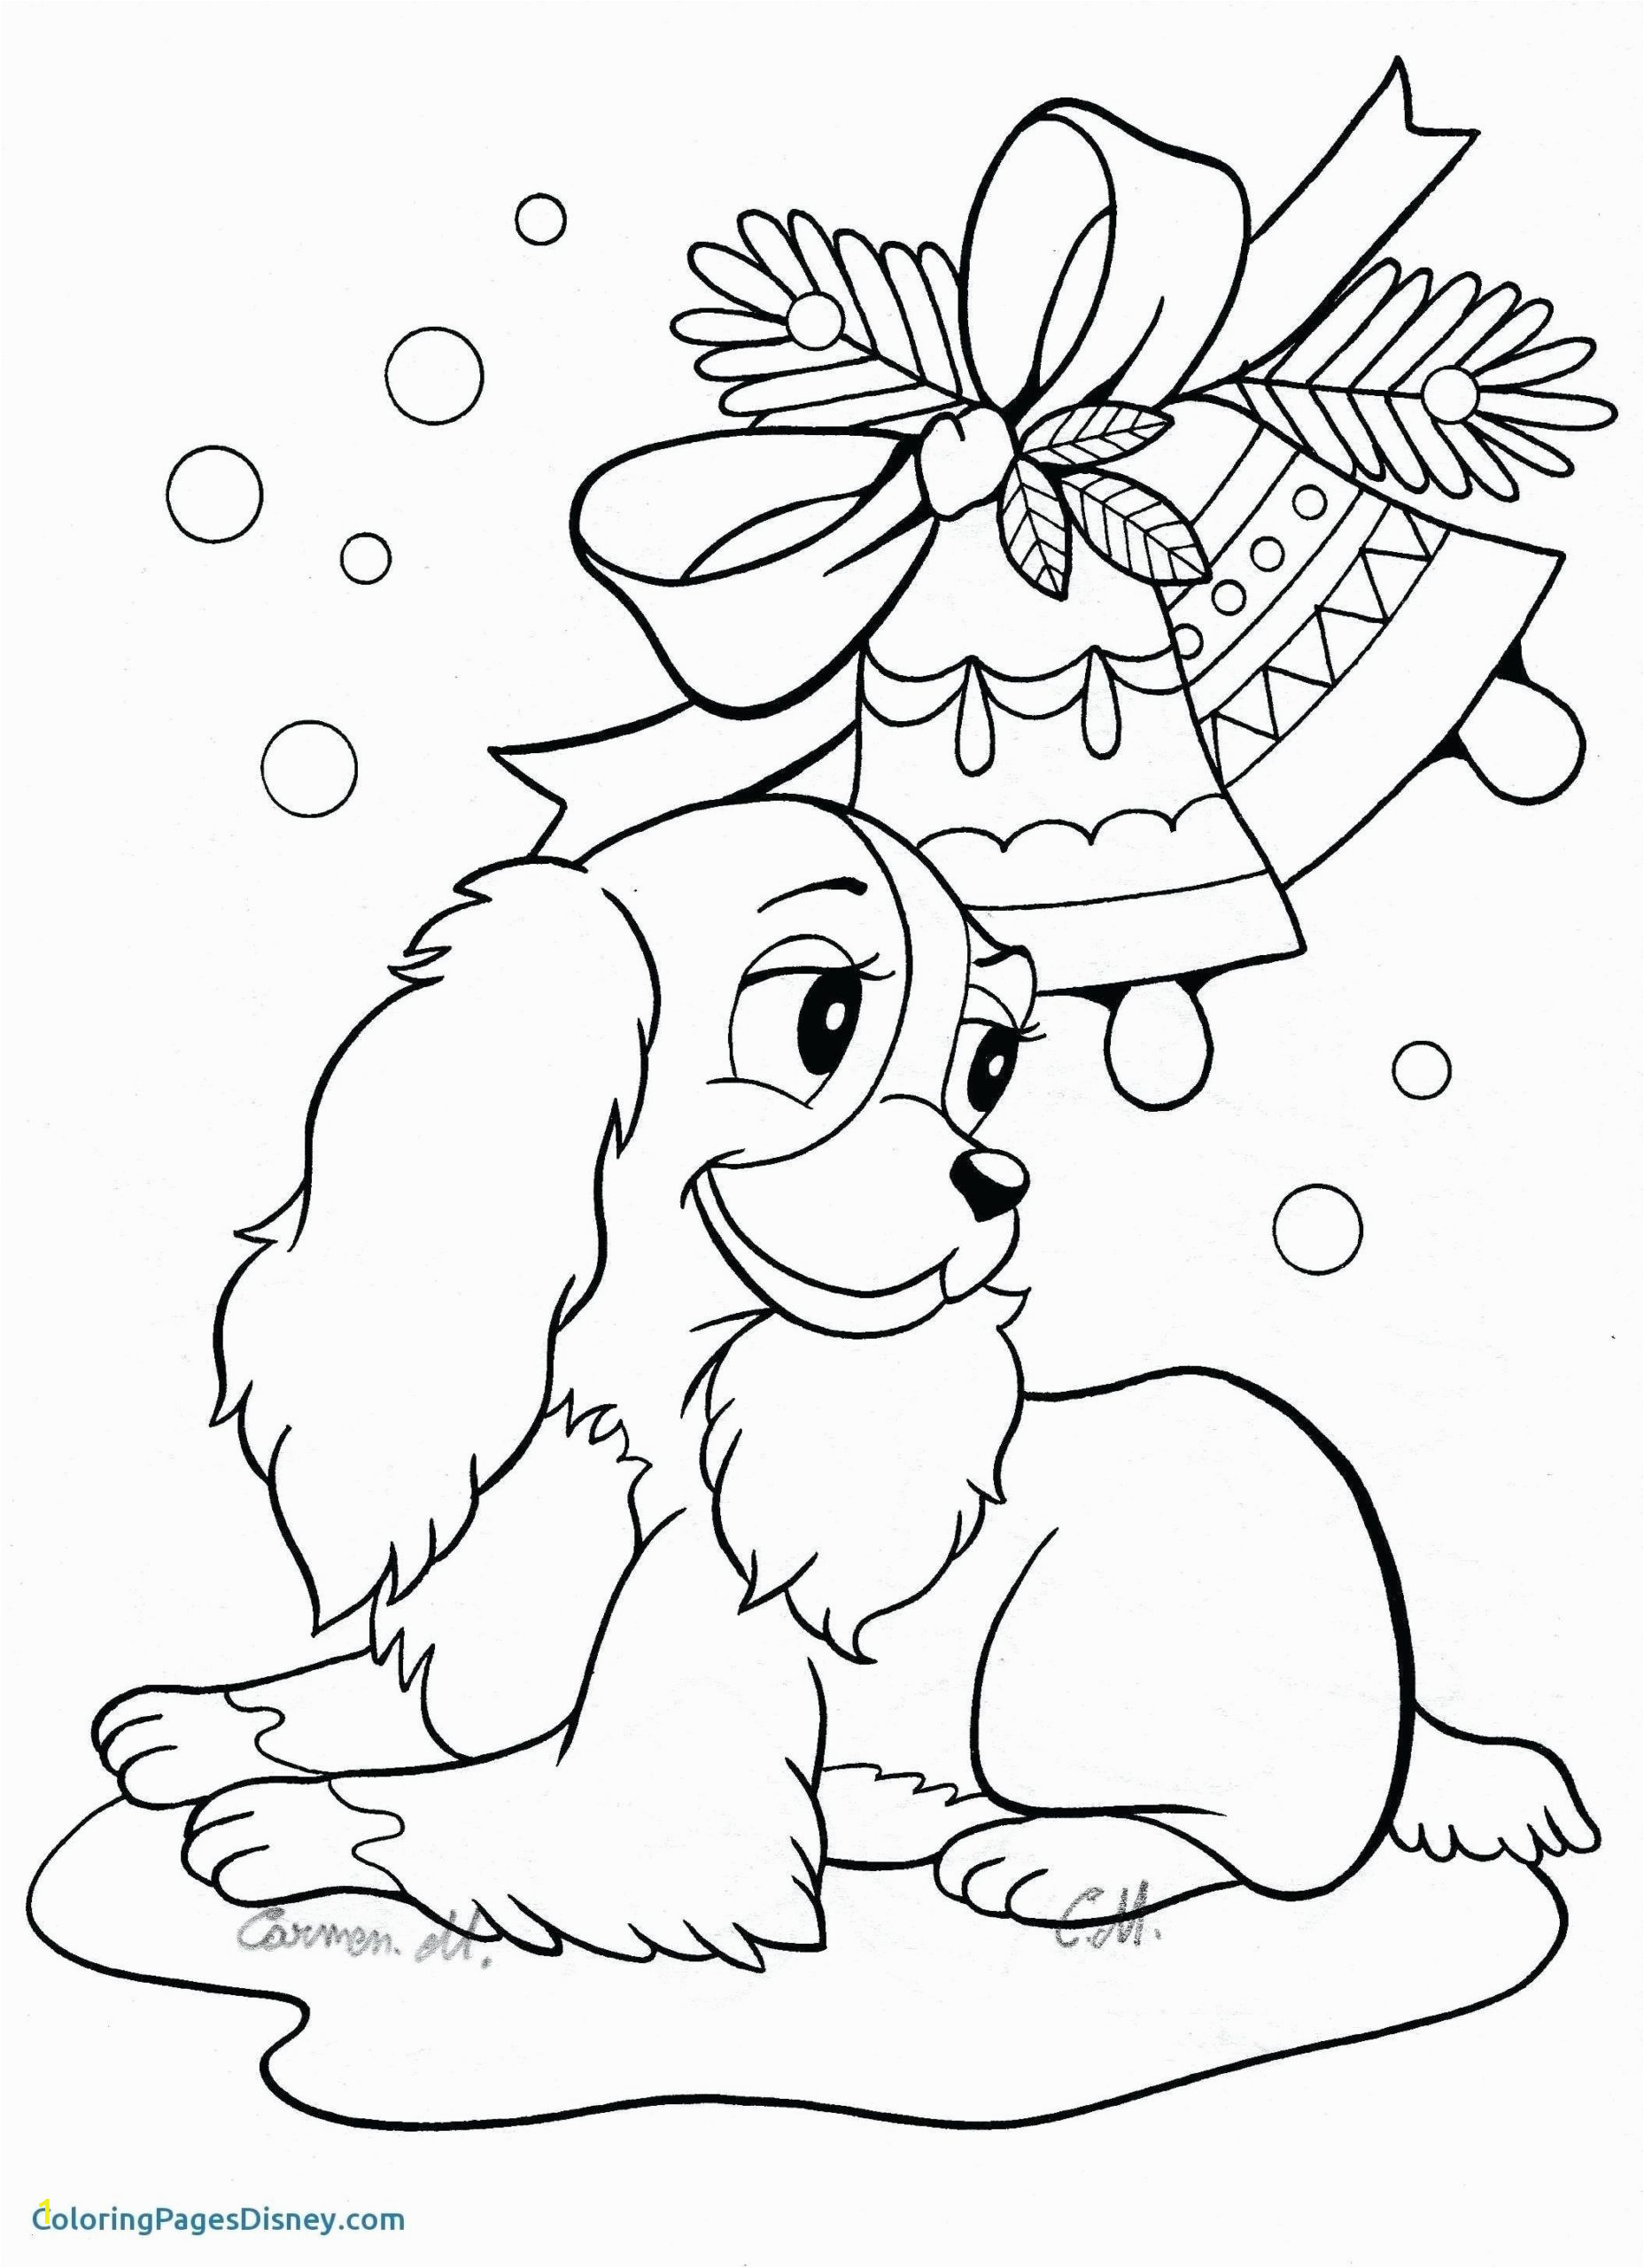 print coloring pages disney free animals princess scaled